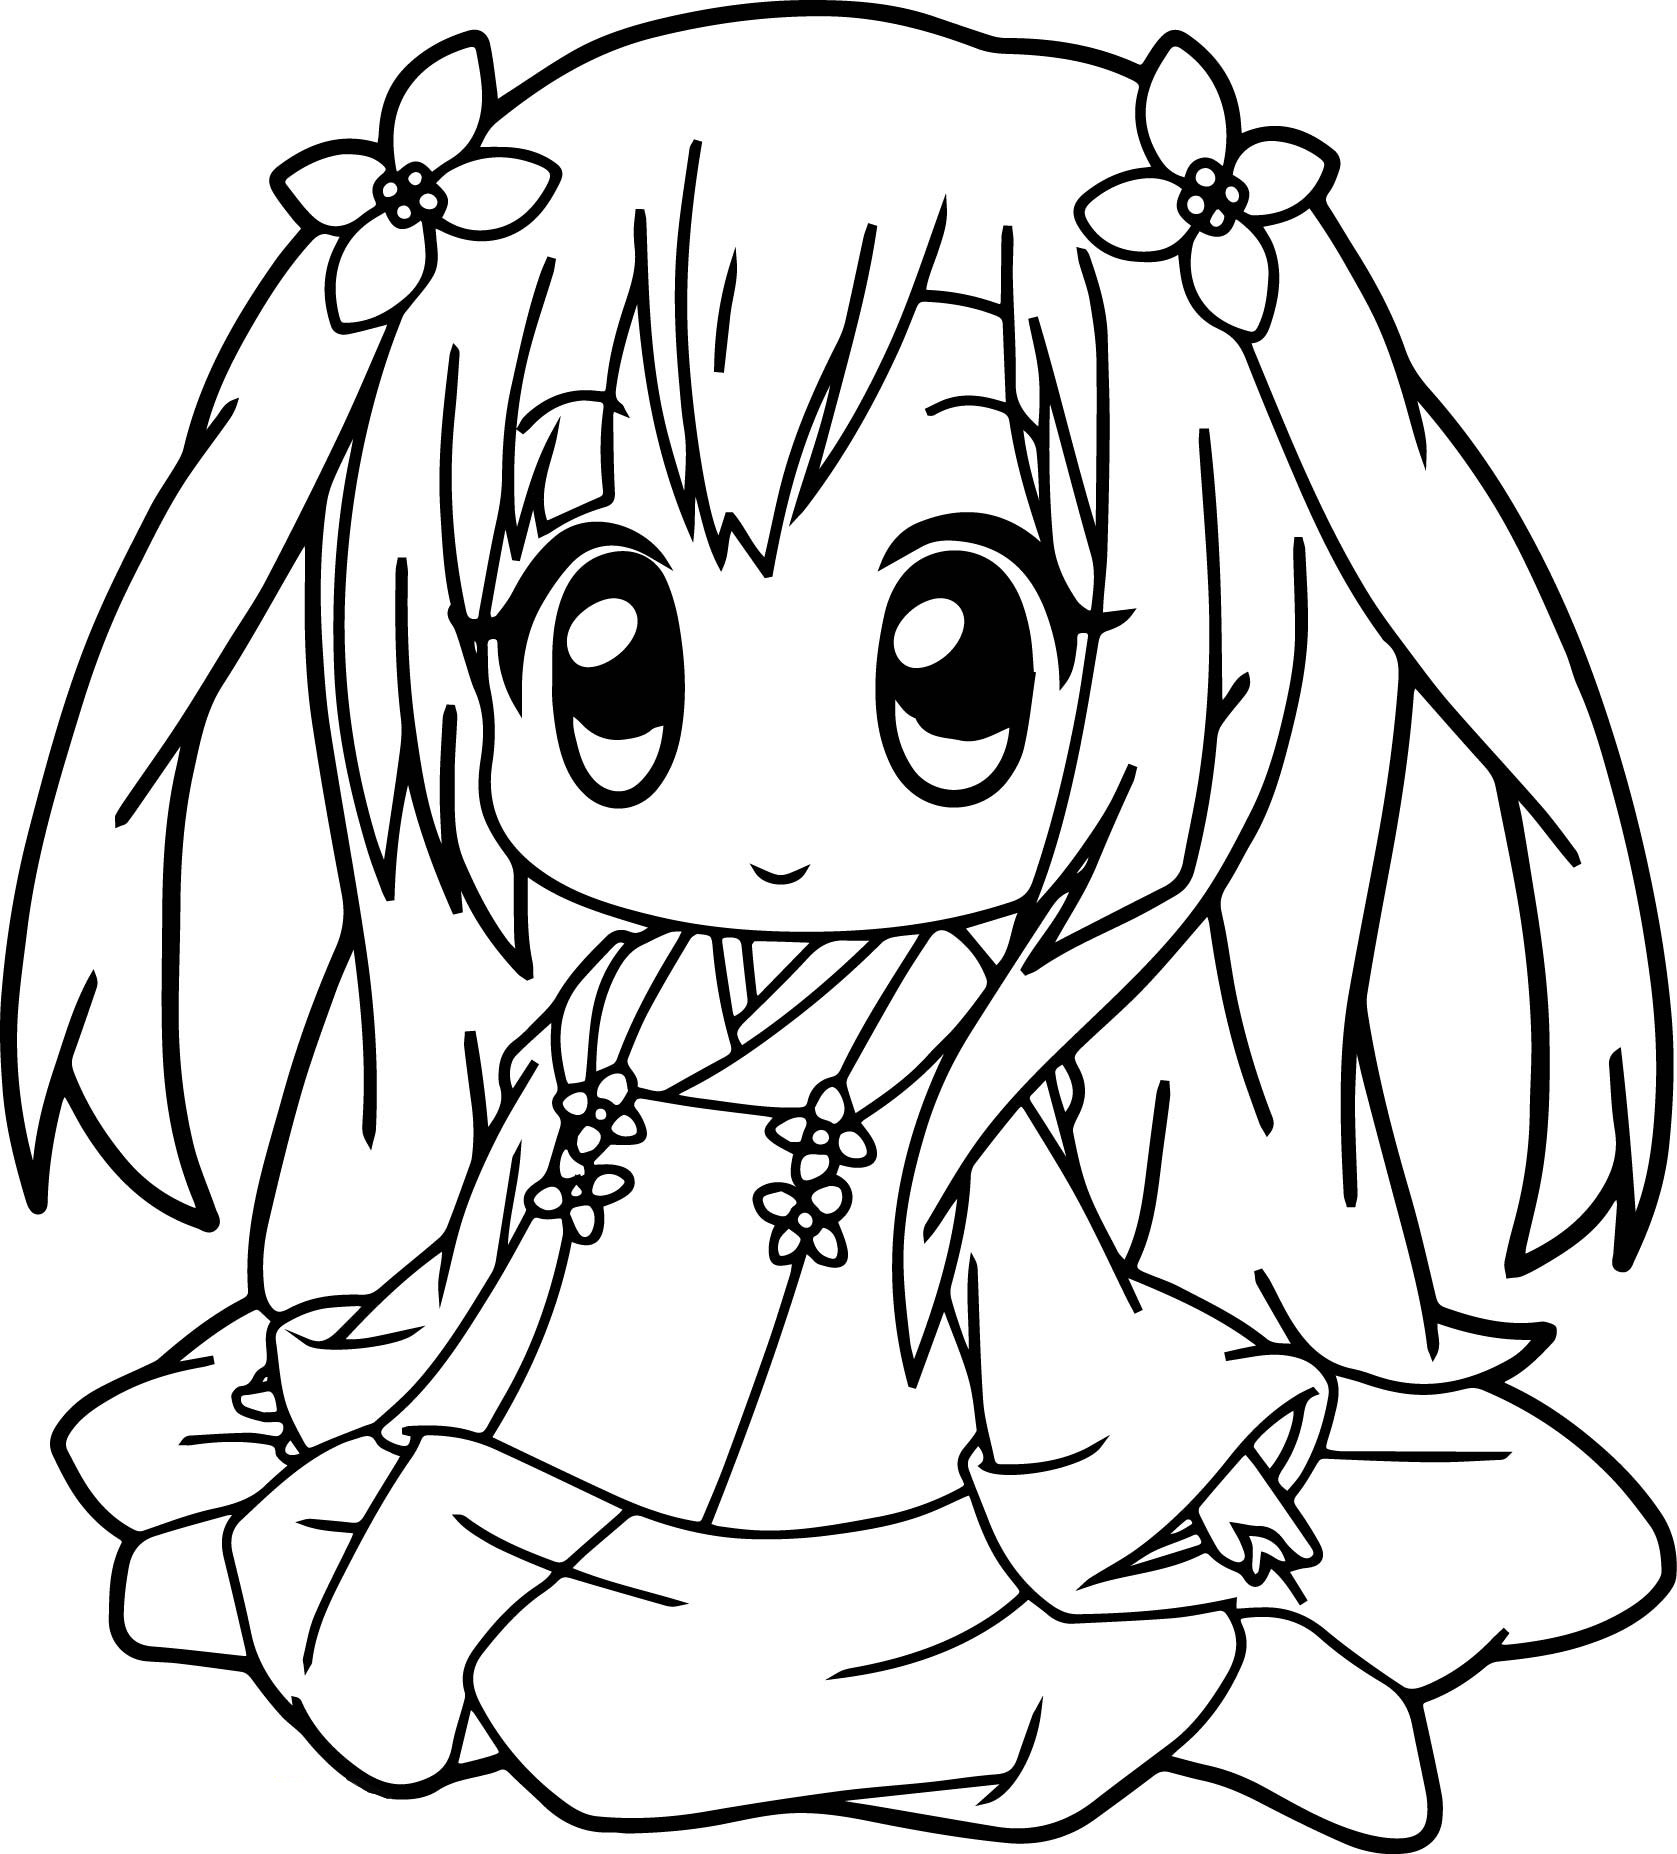 anime girl coloring pictures cute coloring pages best coloring pages for kids pictures coloring anime girl